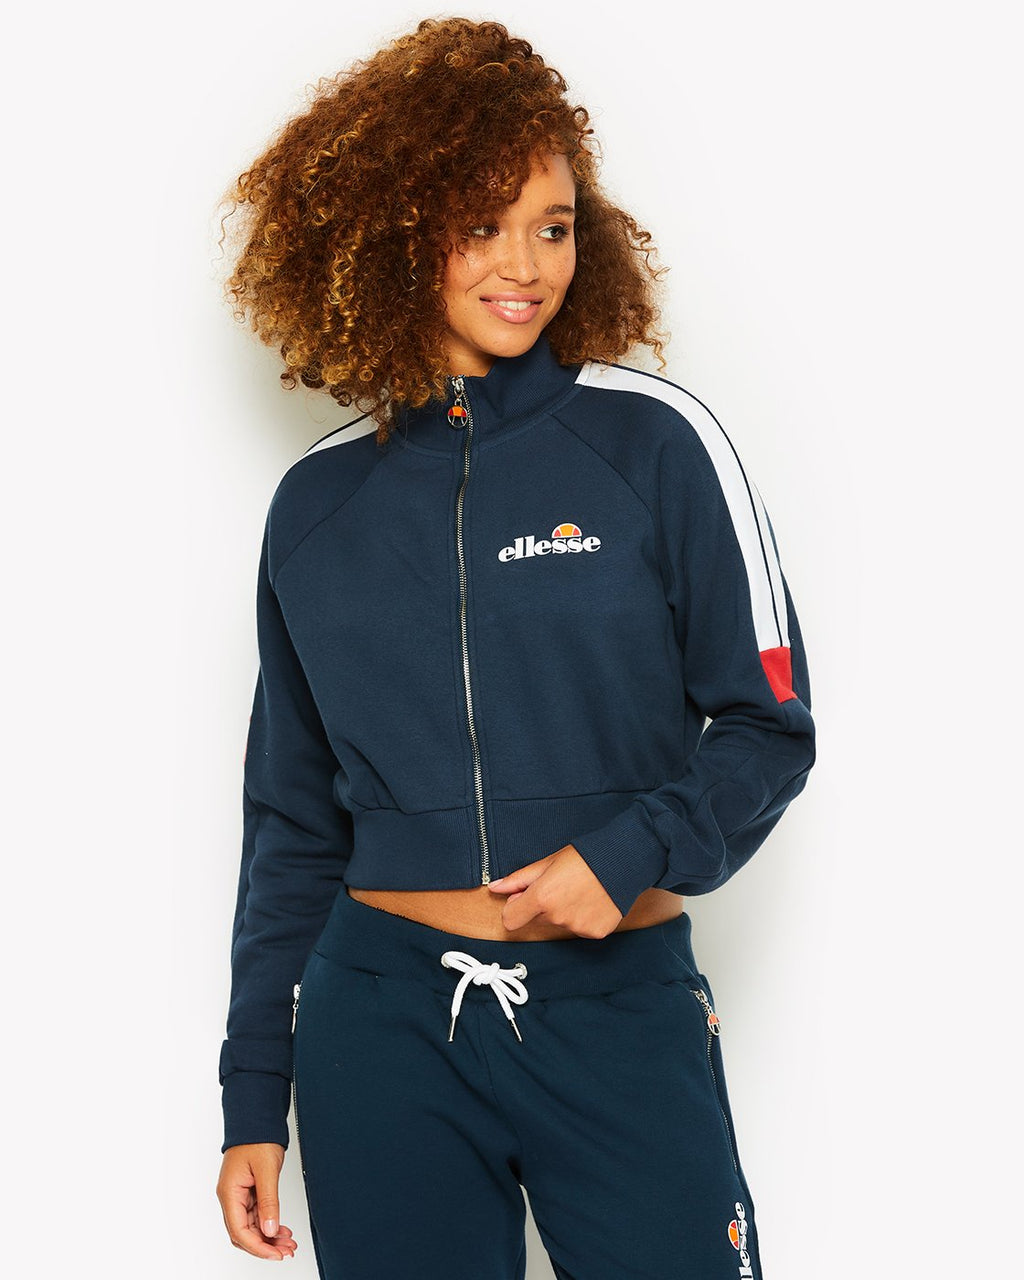 Alagna Track Jacket / Dress Blues